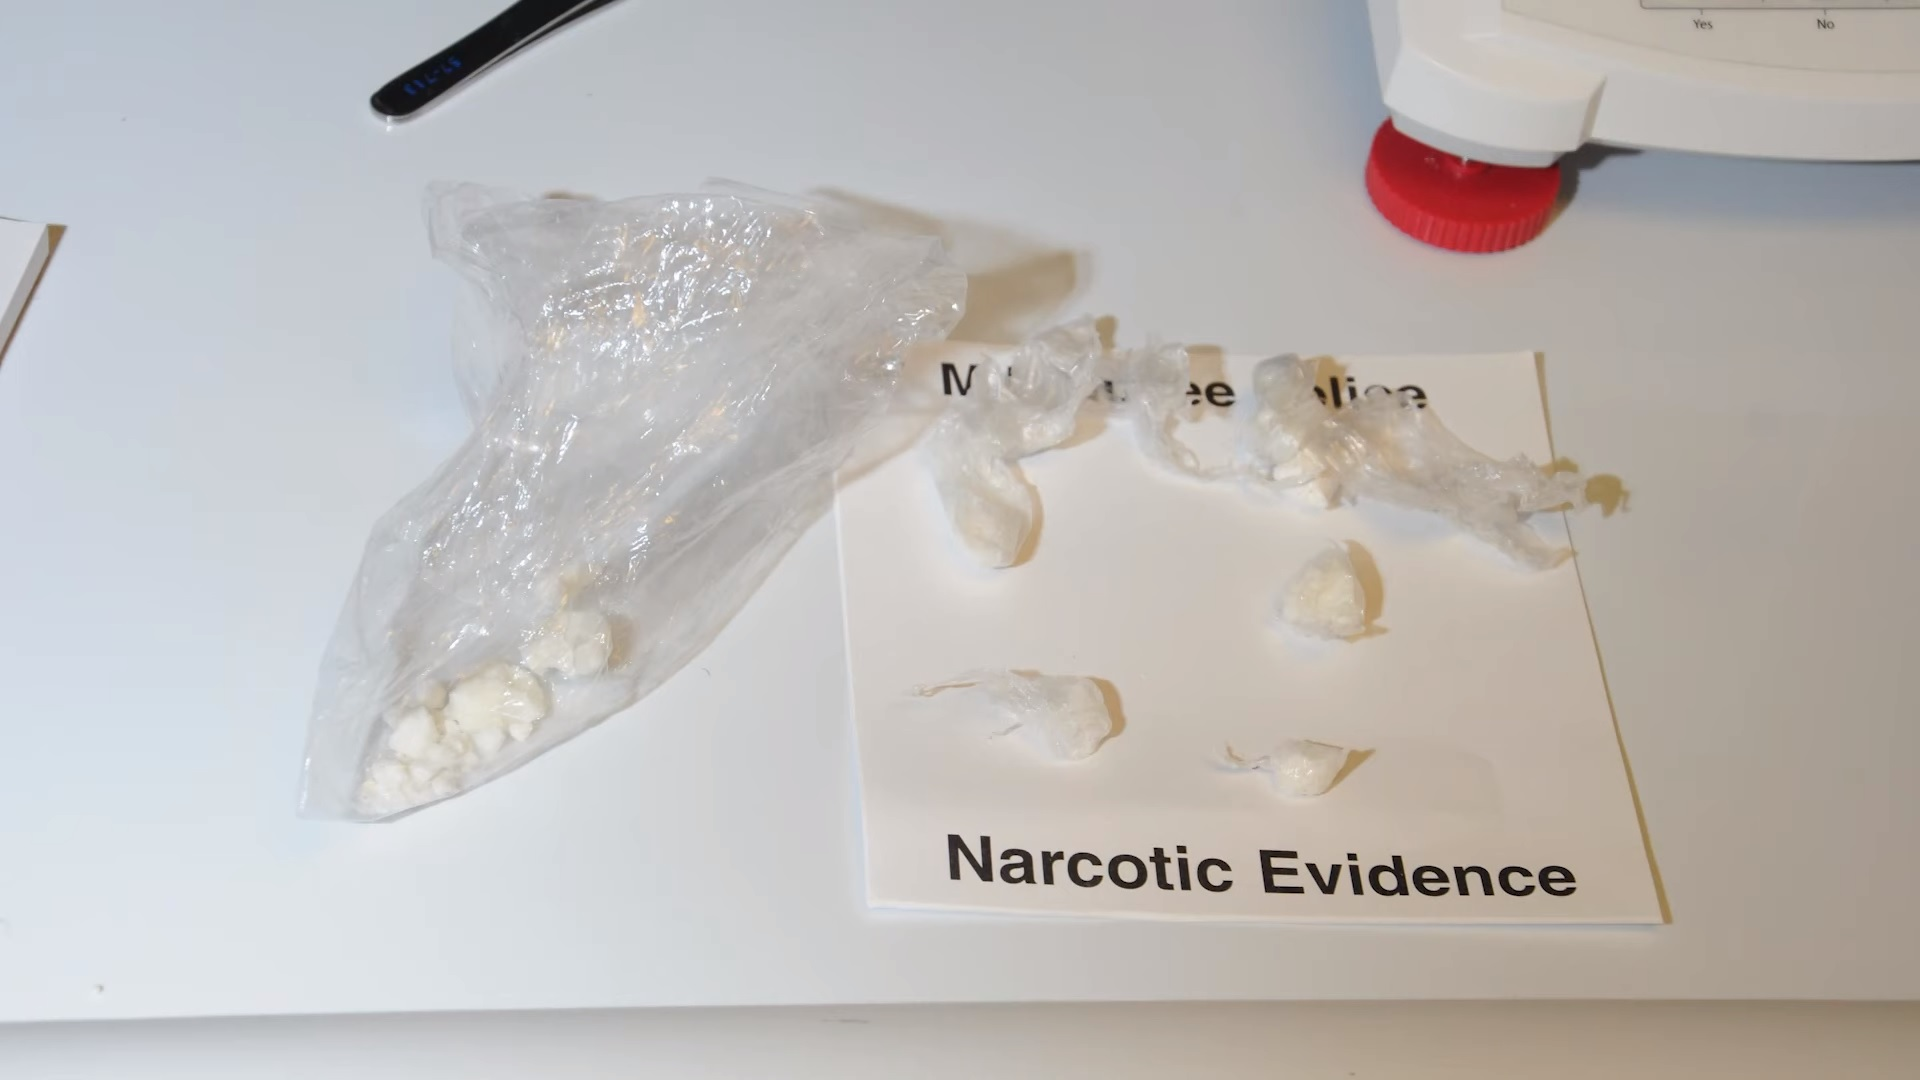 Drugs recovered following officer-involved shooting near 21st and Concordia in Milwaukee  by